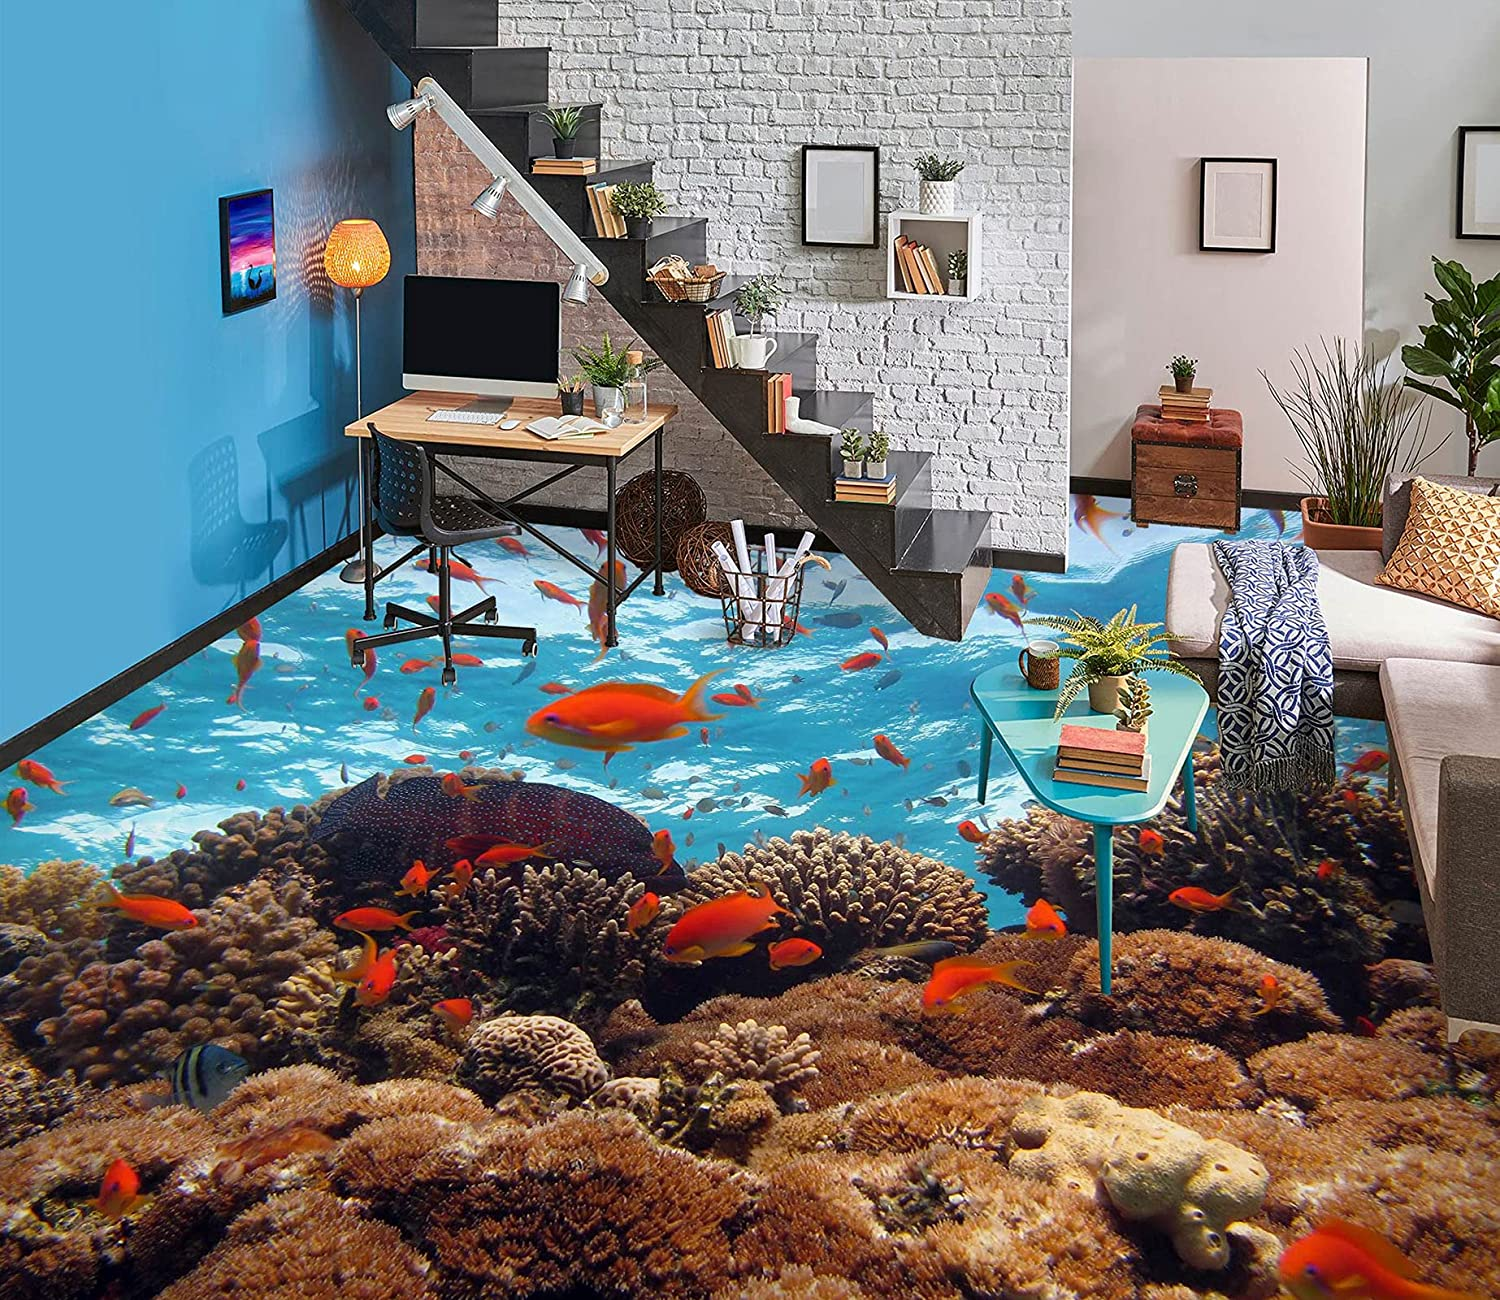 3D Coral Sea Fish Indianapolis Mall 7547 Floor Raleigh Mall A Wallpaper Decal Print Murals Wall